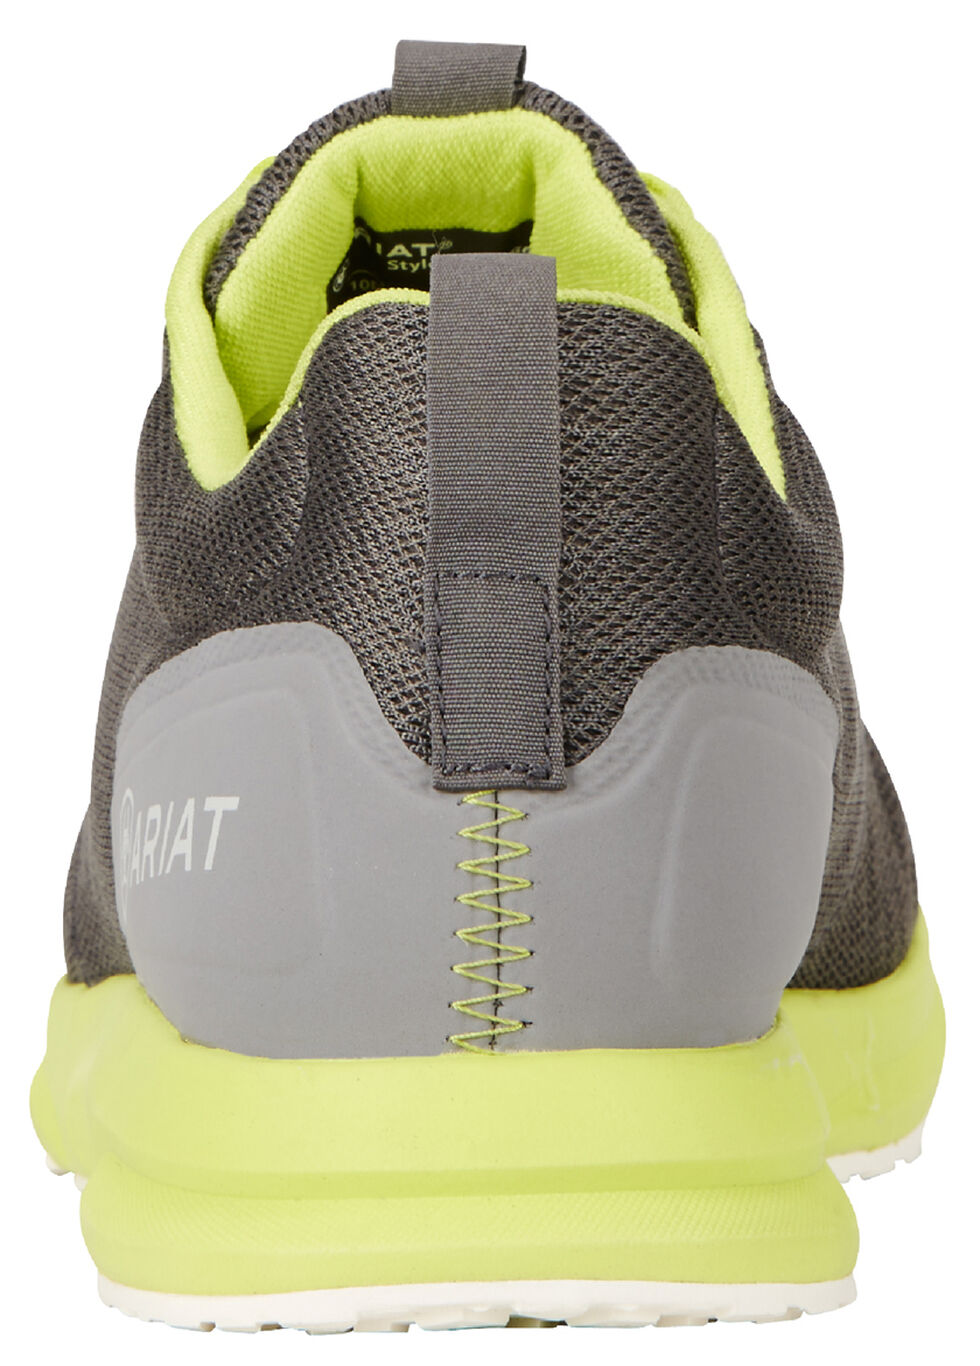 Ariat Men's Grey and Neon Fuse Athletic Shoes , Charcoal Grey, hi-res